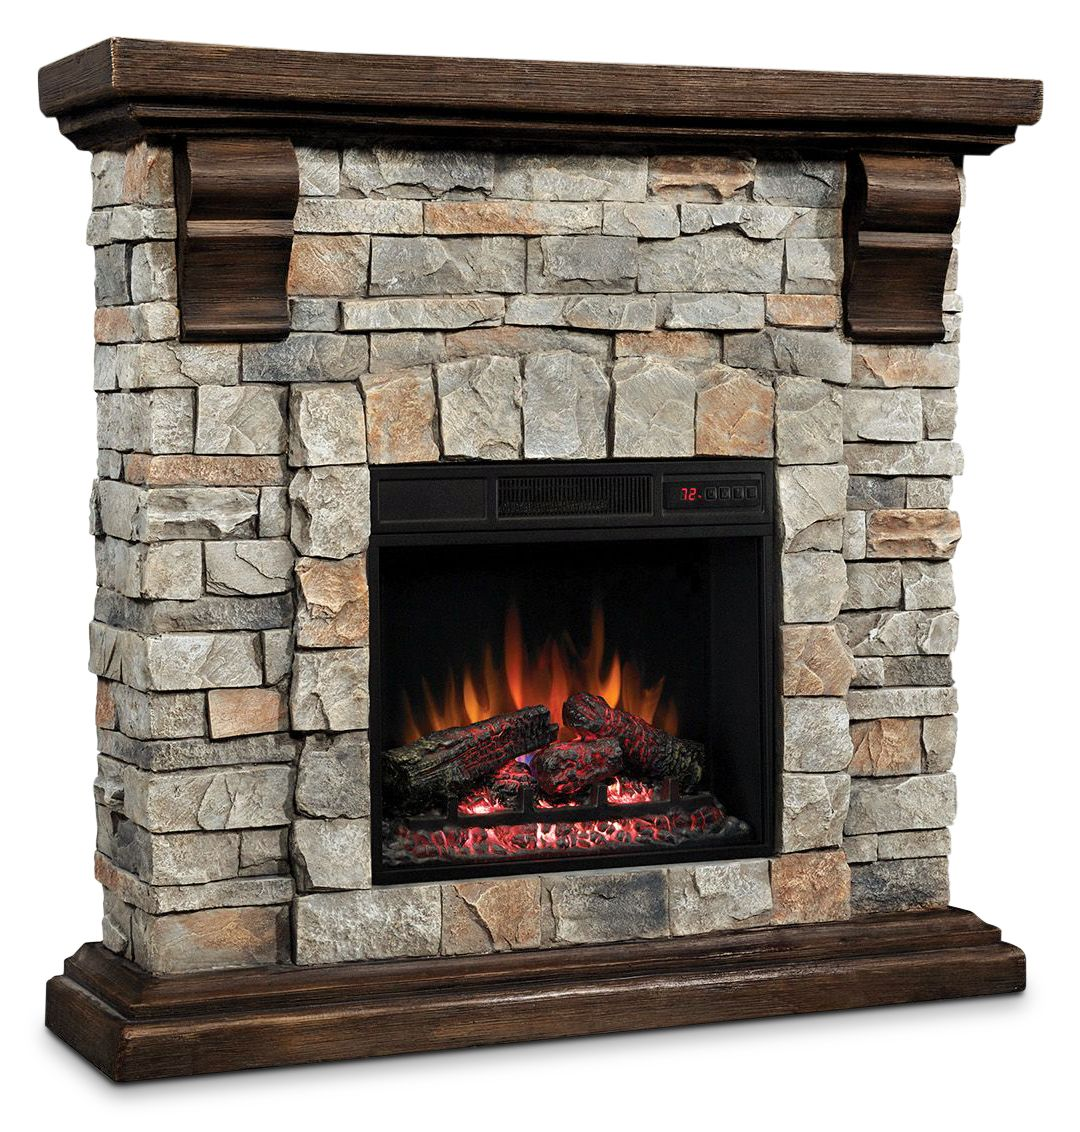 Accent And Occasional Furniture Pioneer Fireplace Dark Pine With Faux Stone Basement Redo Stone Electric Fireplace Fireplace Electric Fireplace